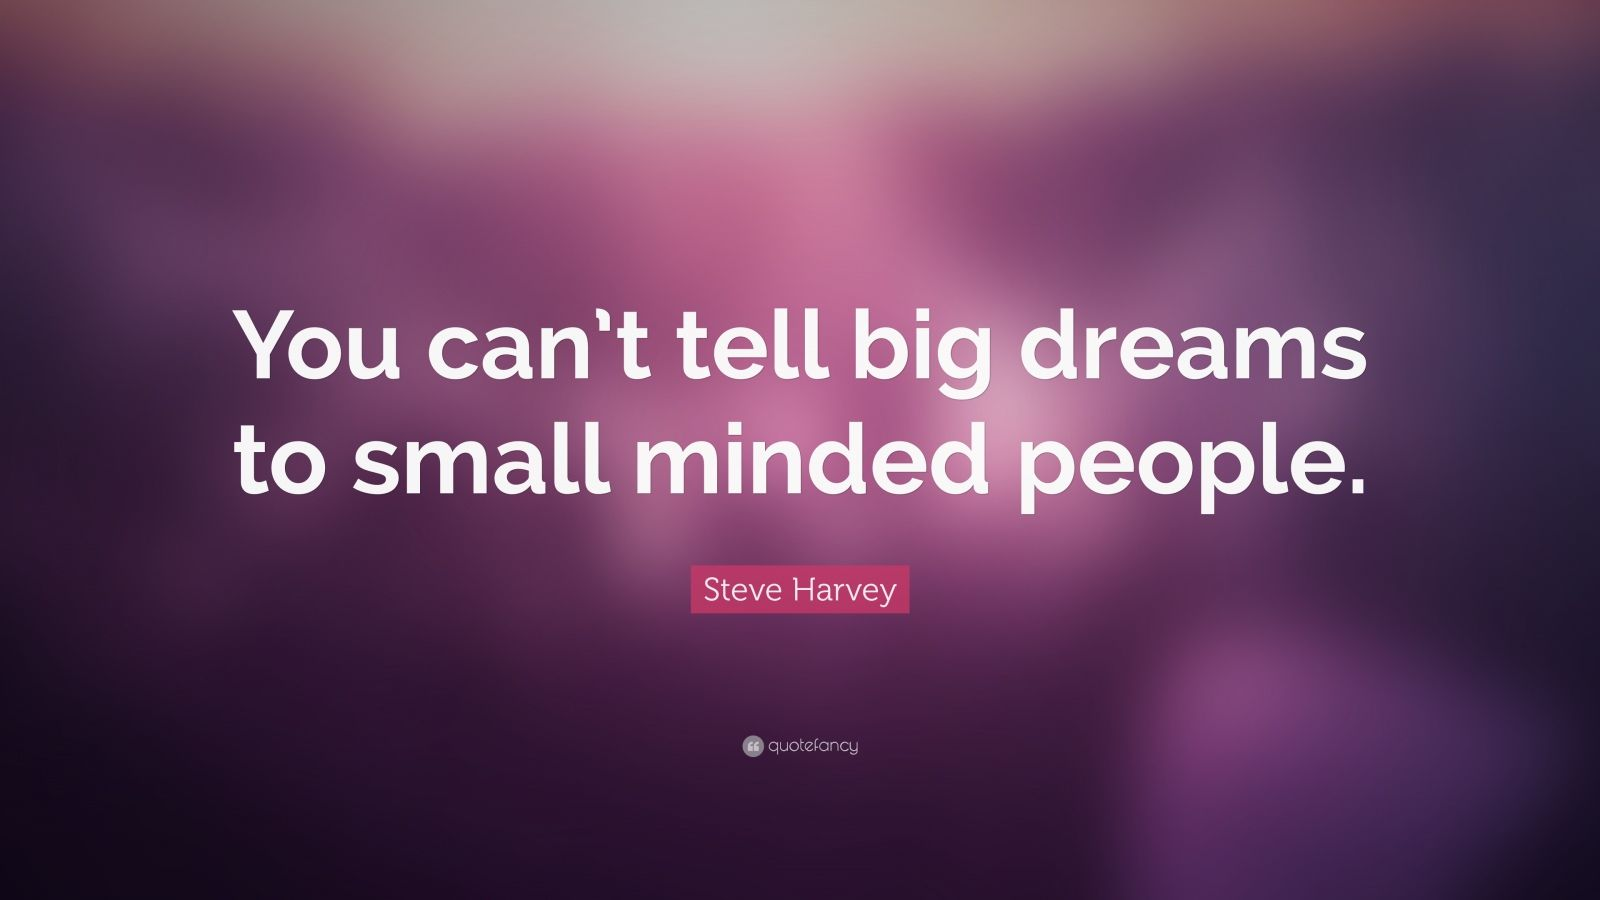 Steve Harvey Quotes Steve Harvey Quotes 97 Wallpapers  Quotefancy